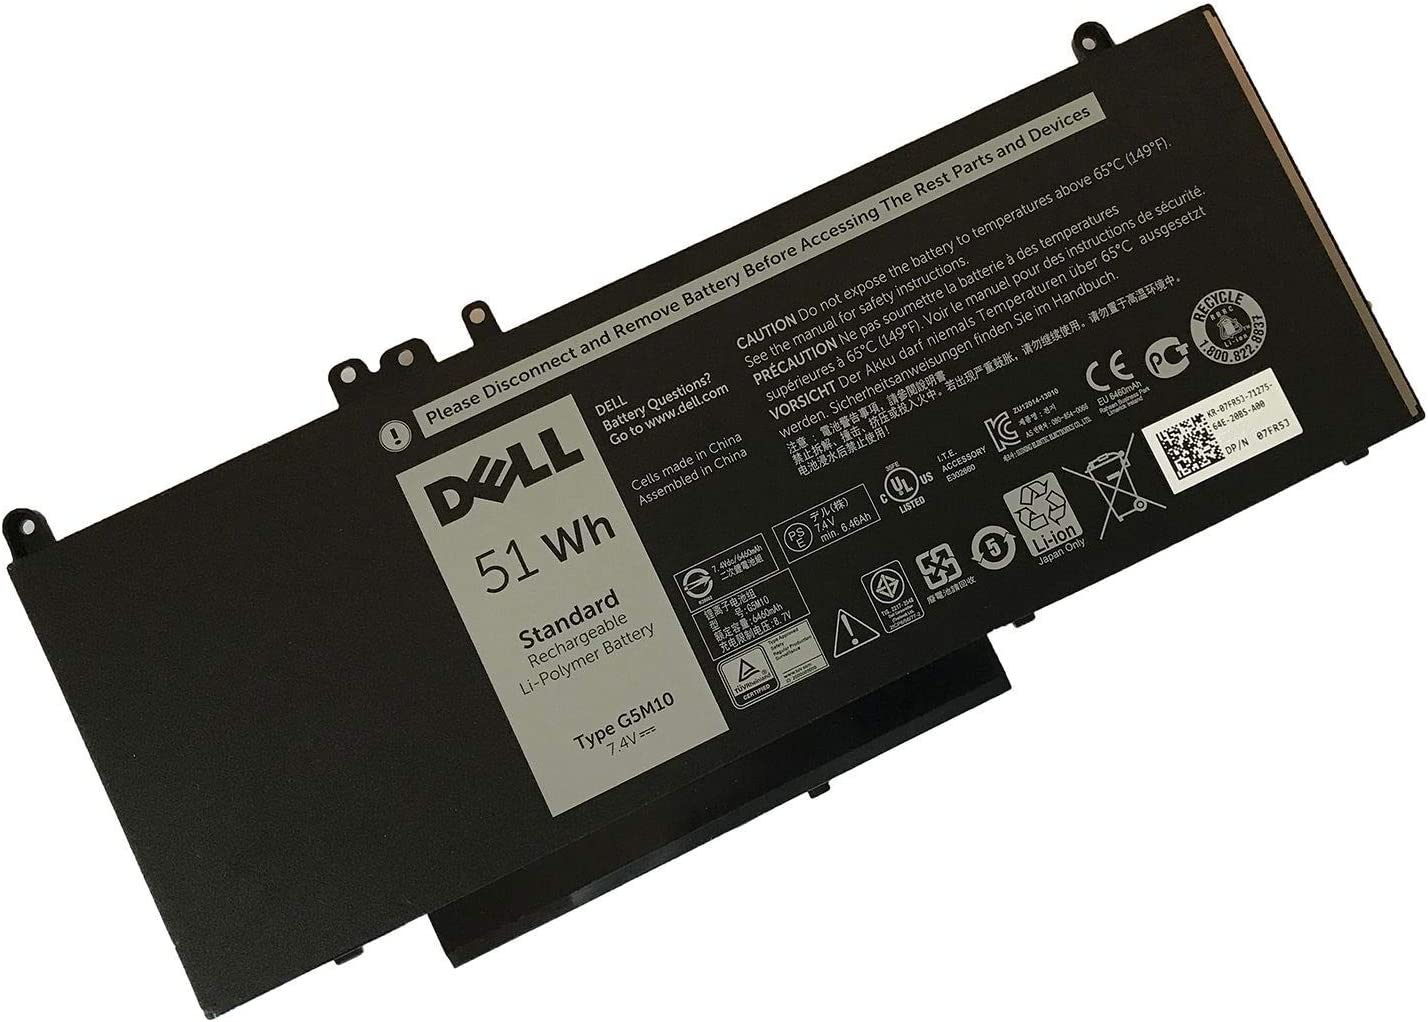 DELL G5M10 7.6V 51WH Lithium Polymer Battery for DELL Latitude E5450 E5550 Notebook